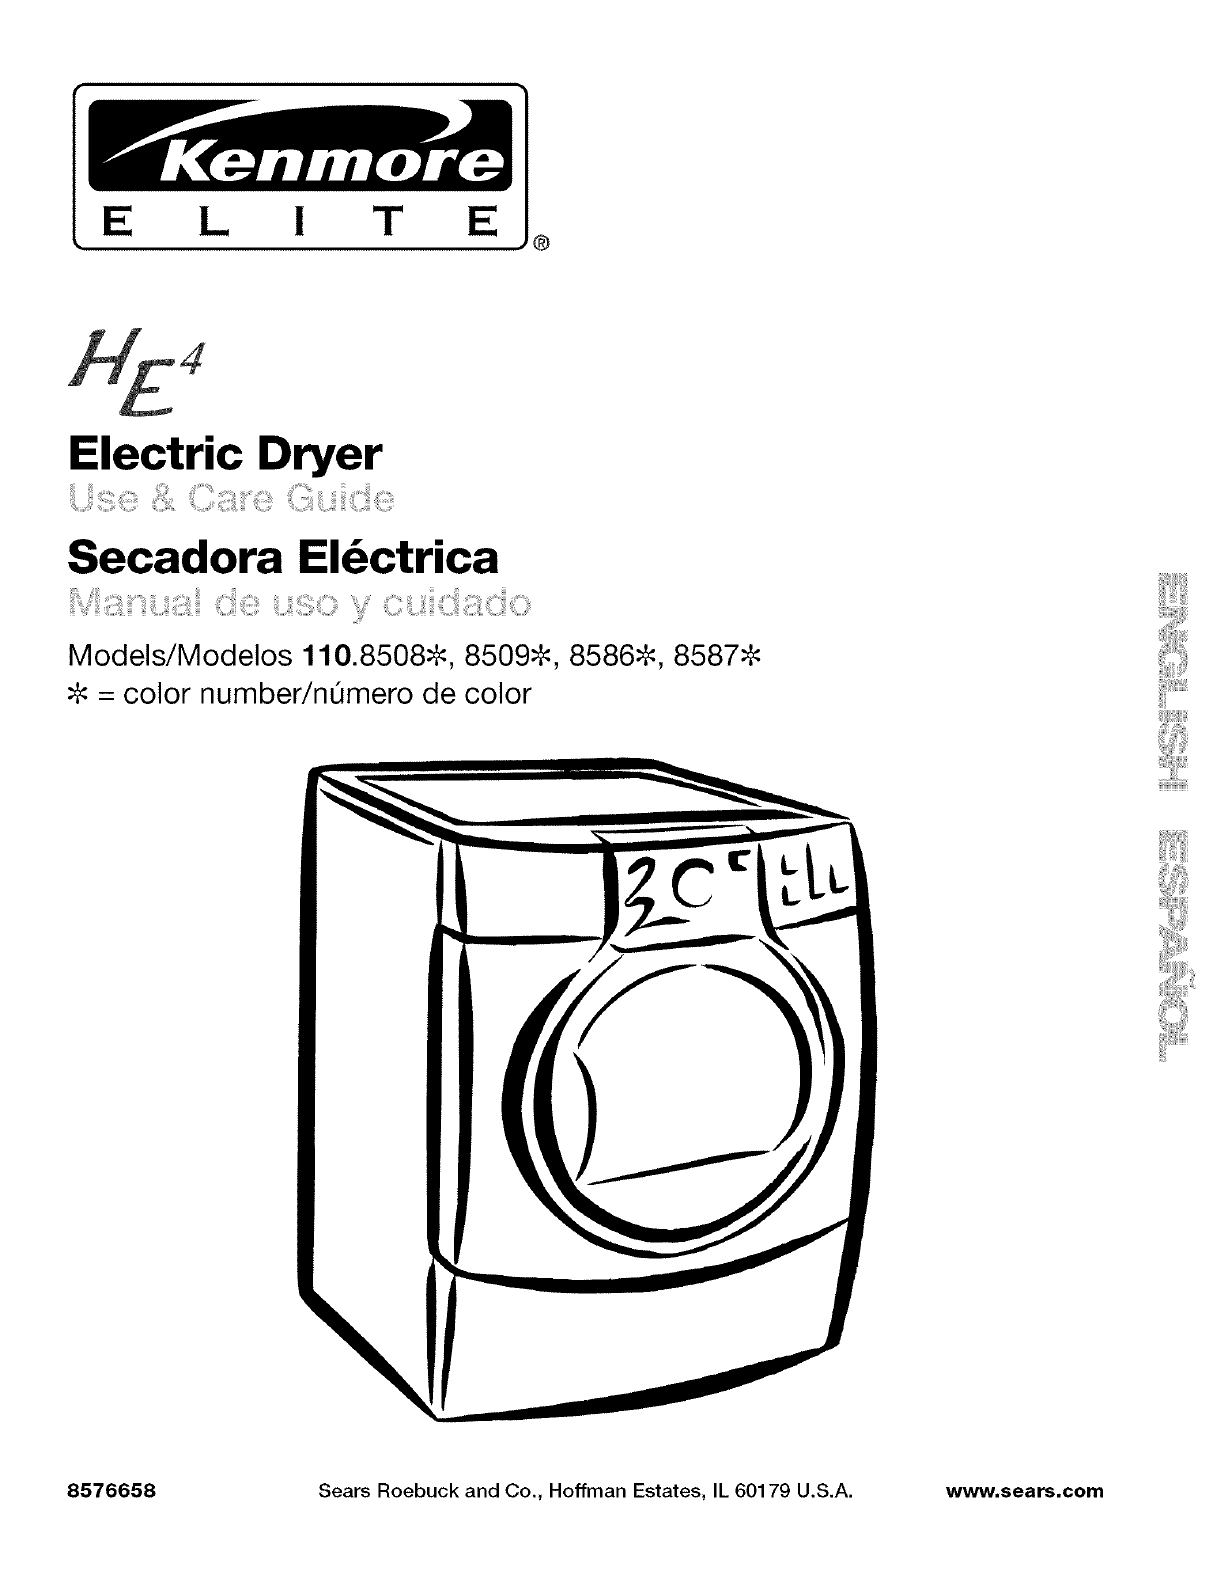 09e93d25 18ab 48bd 9d39 7ed847057db9 bg1?resize=665%2C864 kenmore elite dryer wiring diagram the best wiring diagram 2017  at reclaimingppi.co